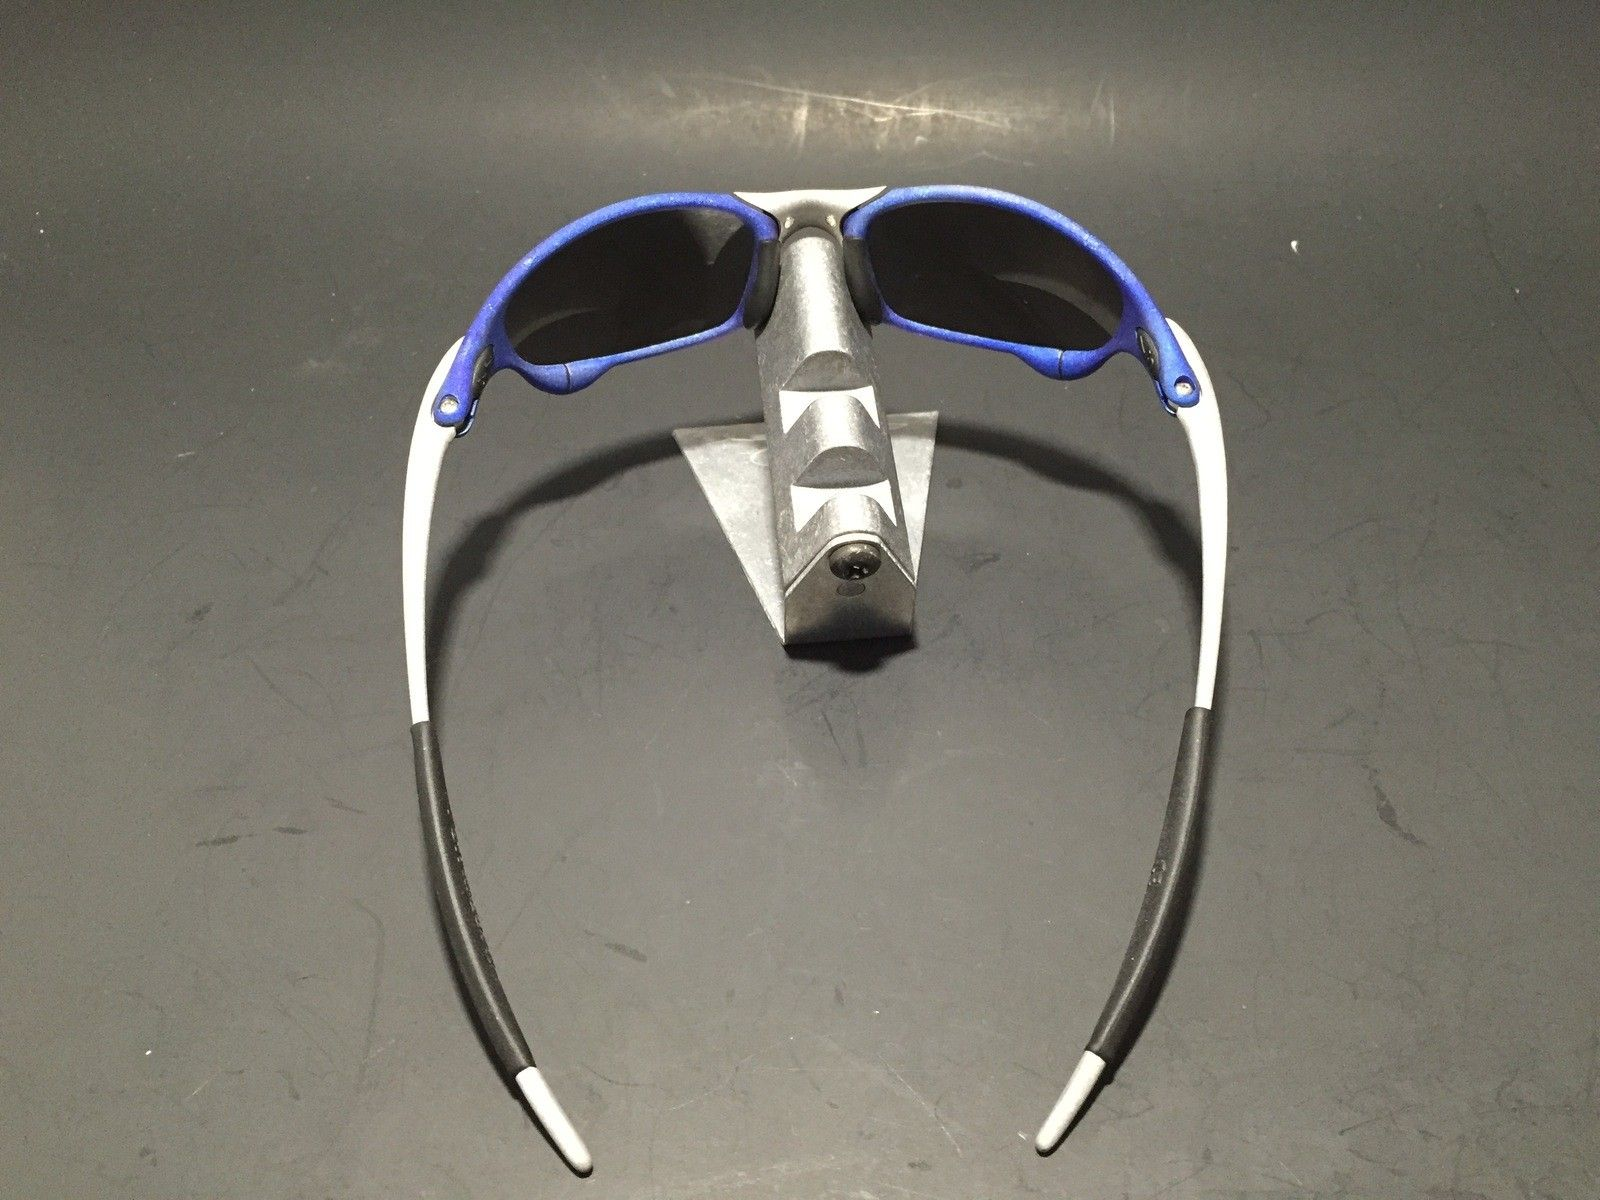 Anodized Juliet Dallas Cowboys colors Blue/Silver w/ OEM Ice Lenses - IMG_1780.JPG